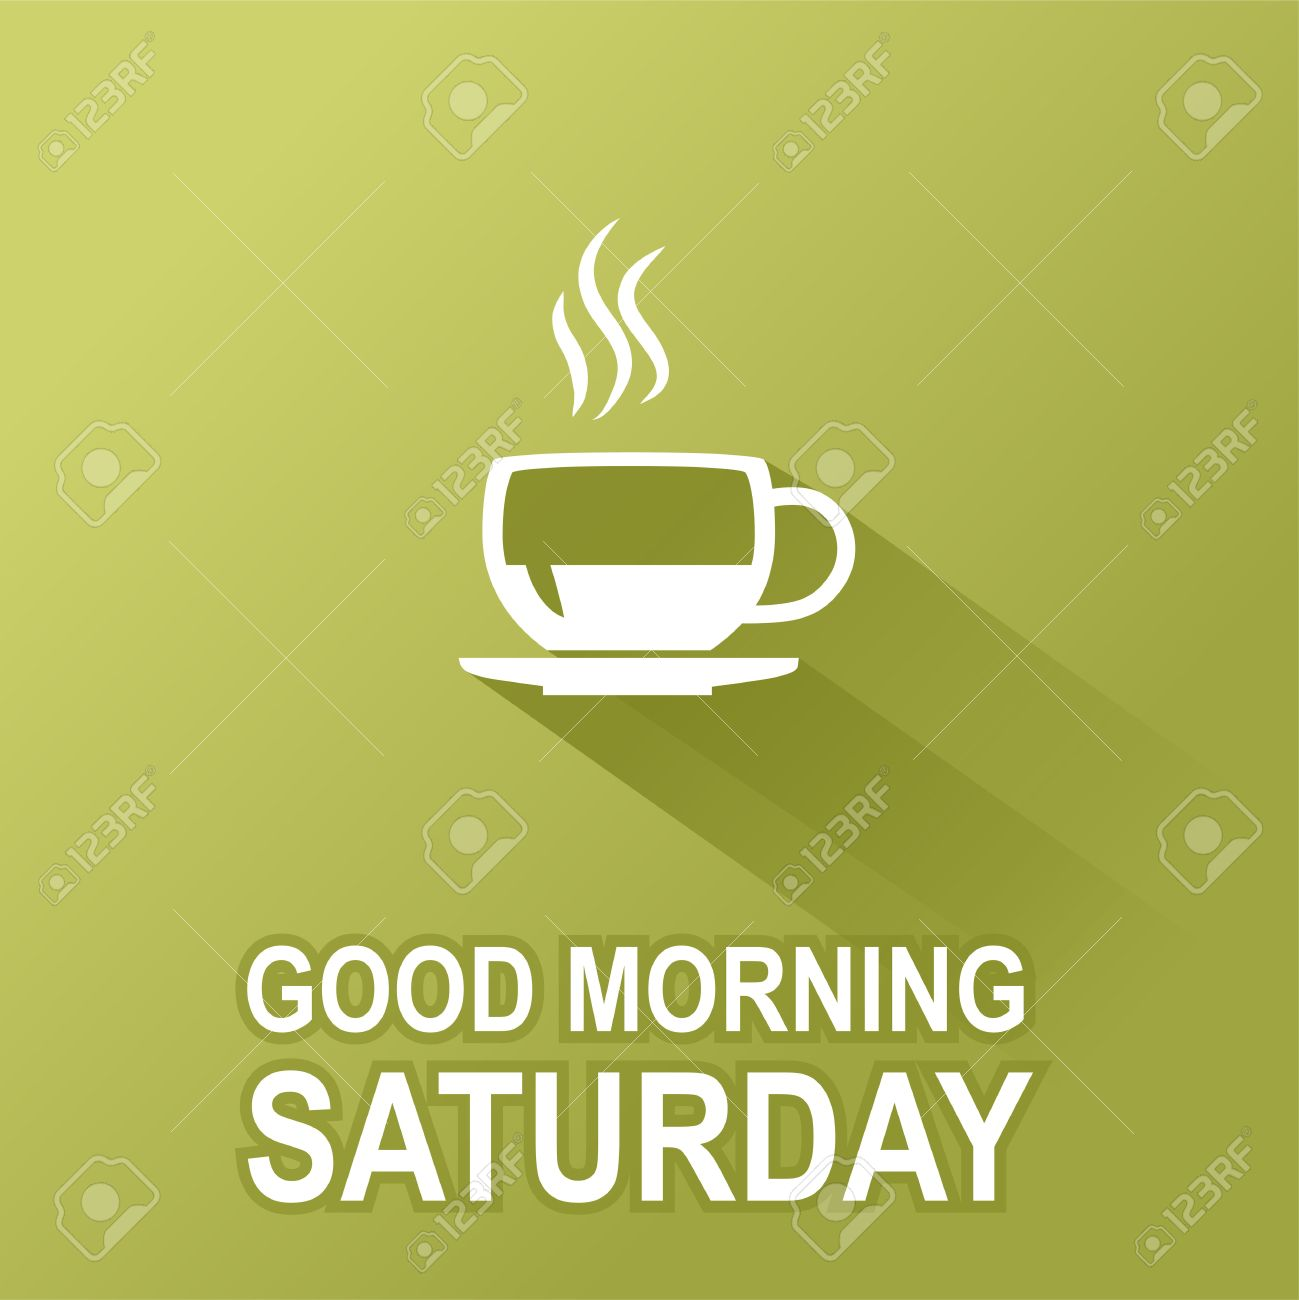 Text Good Morning Saturday On A Green Background Royalty Free